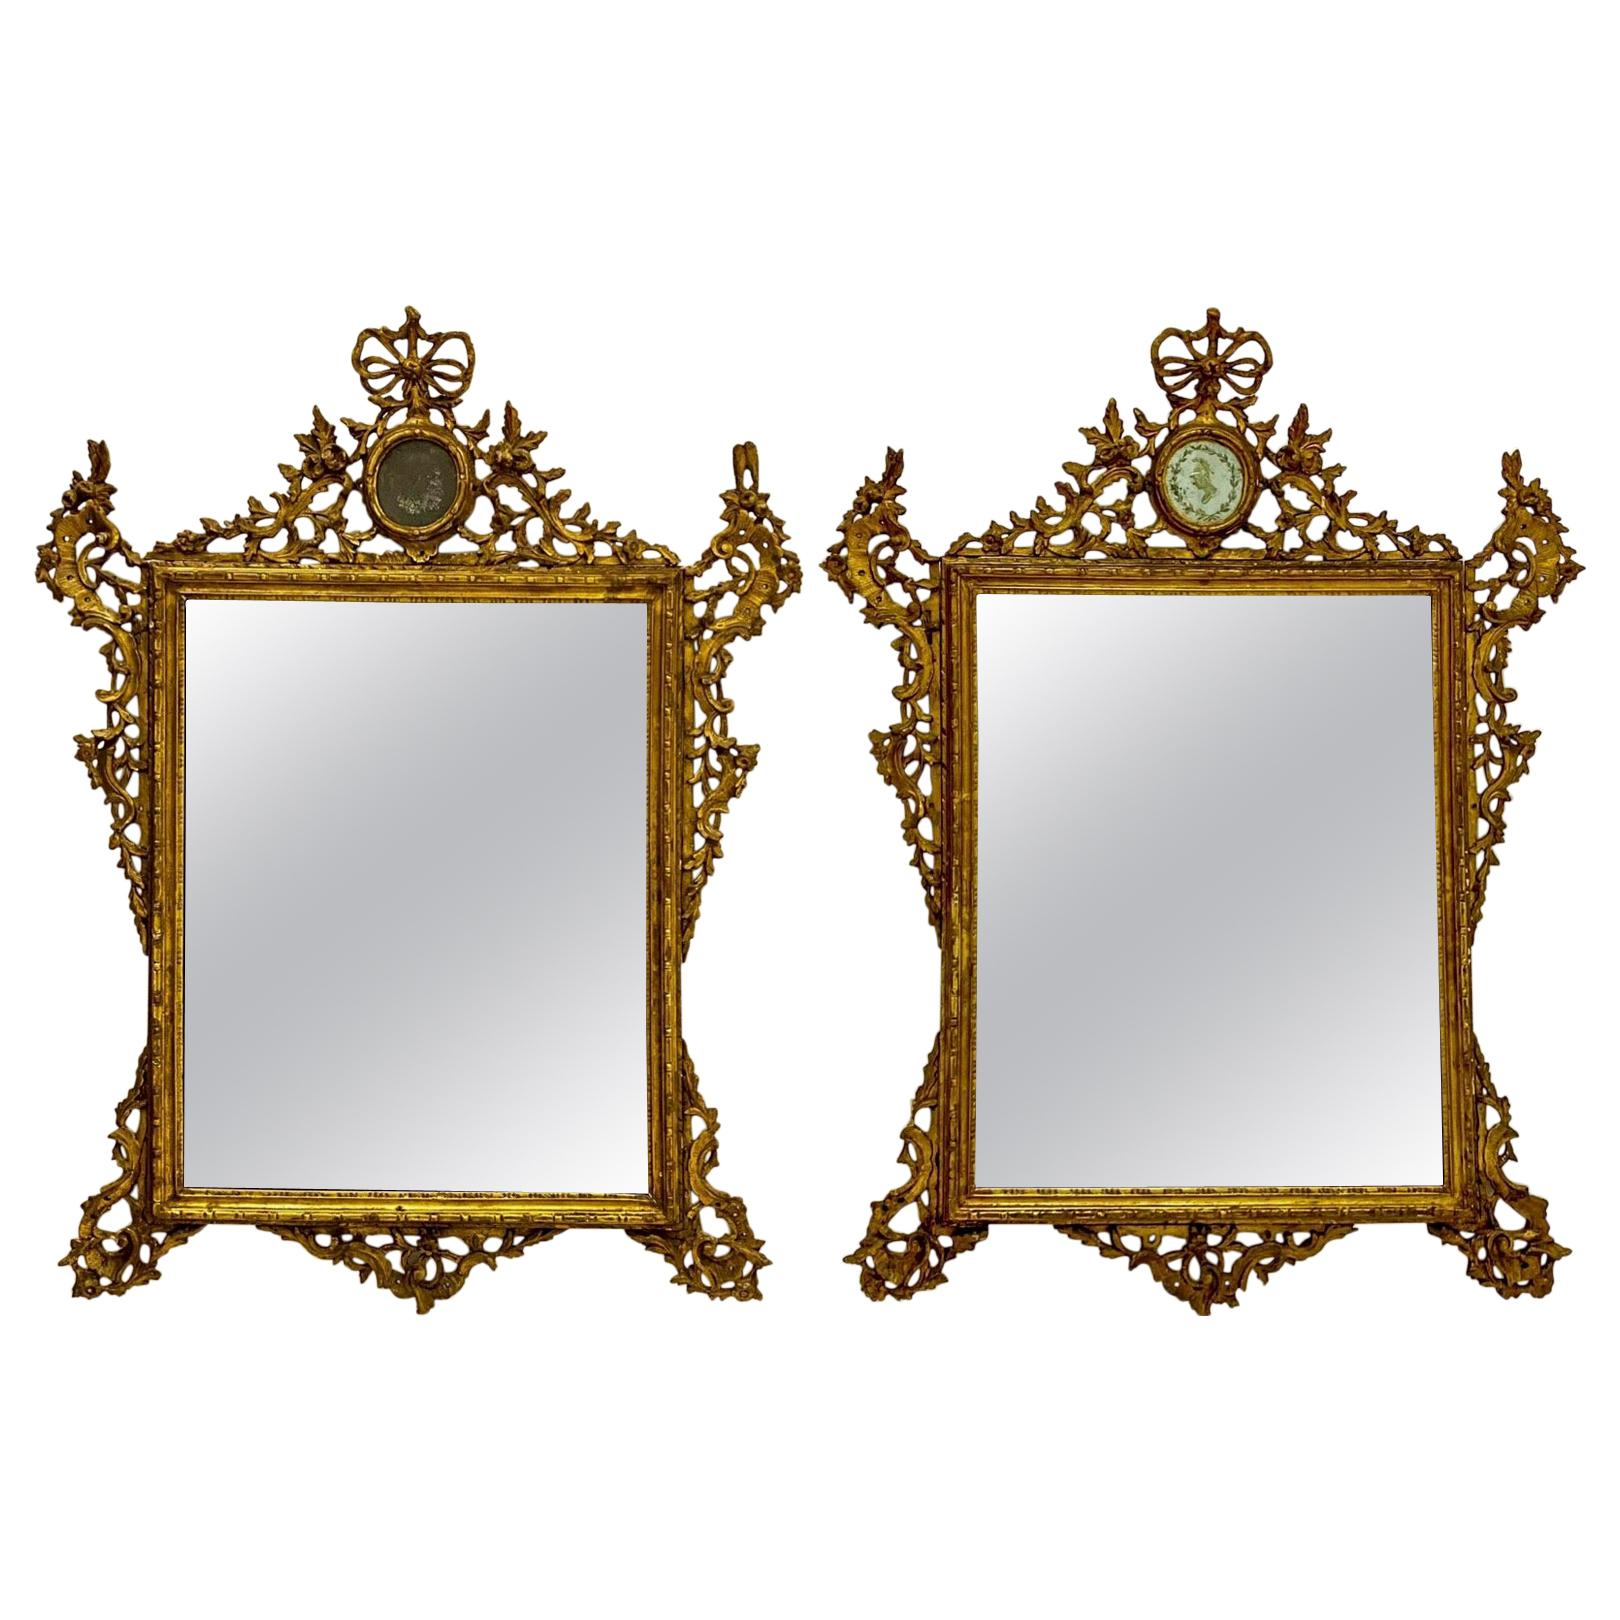 19th Century French Neoclassical Carved Giltwood Mirrors, a Pair